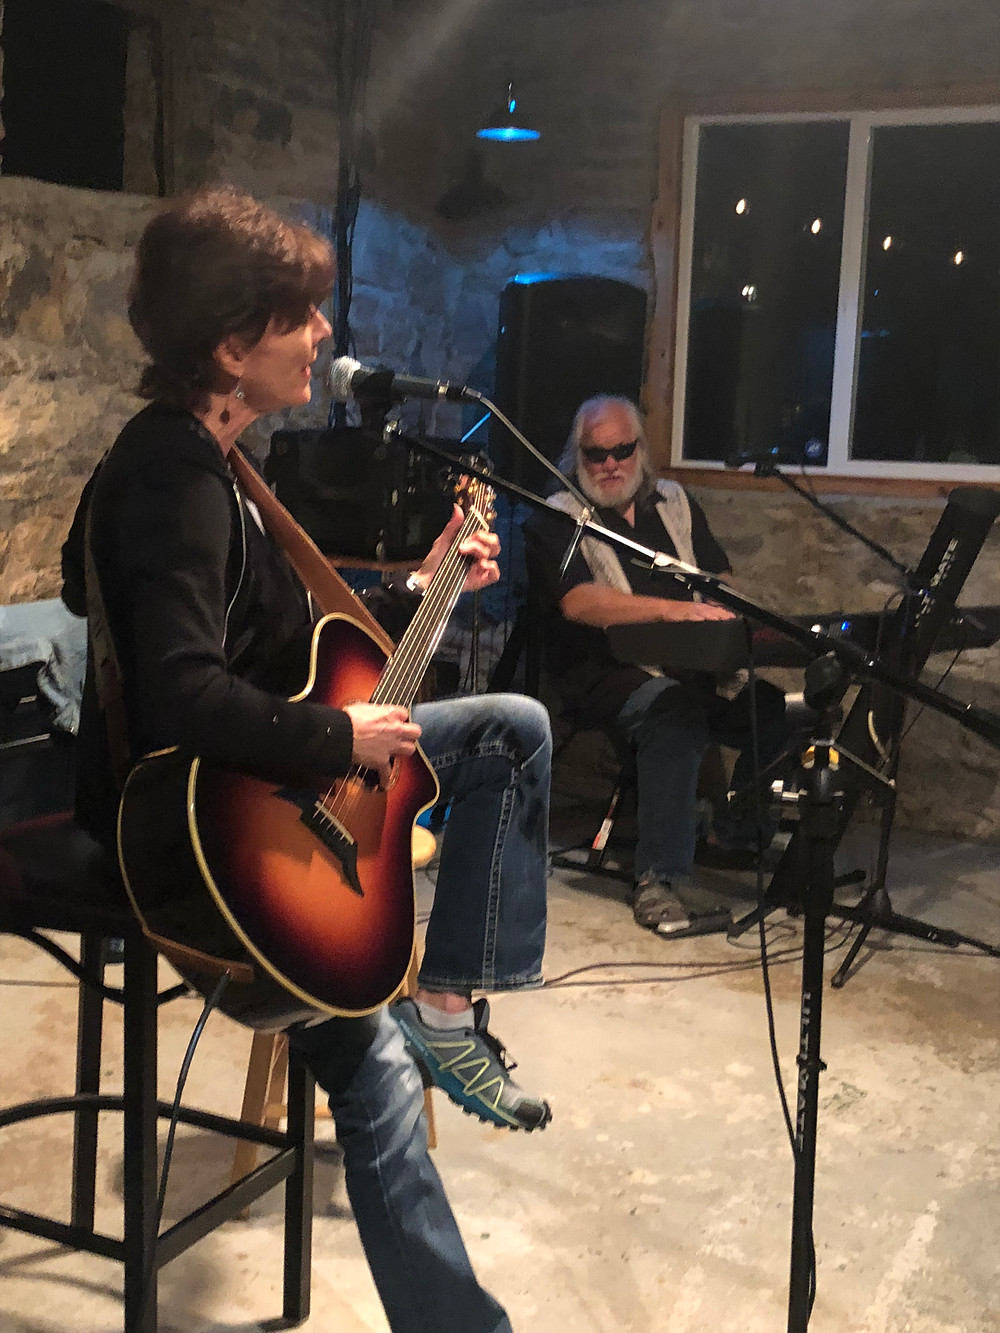 Kim McLean and Johnny Neel jamming at Songwriter Salon at the 7695